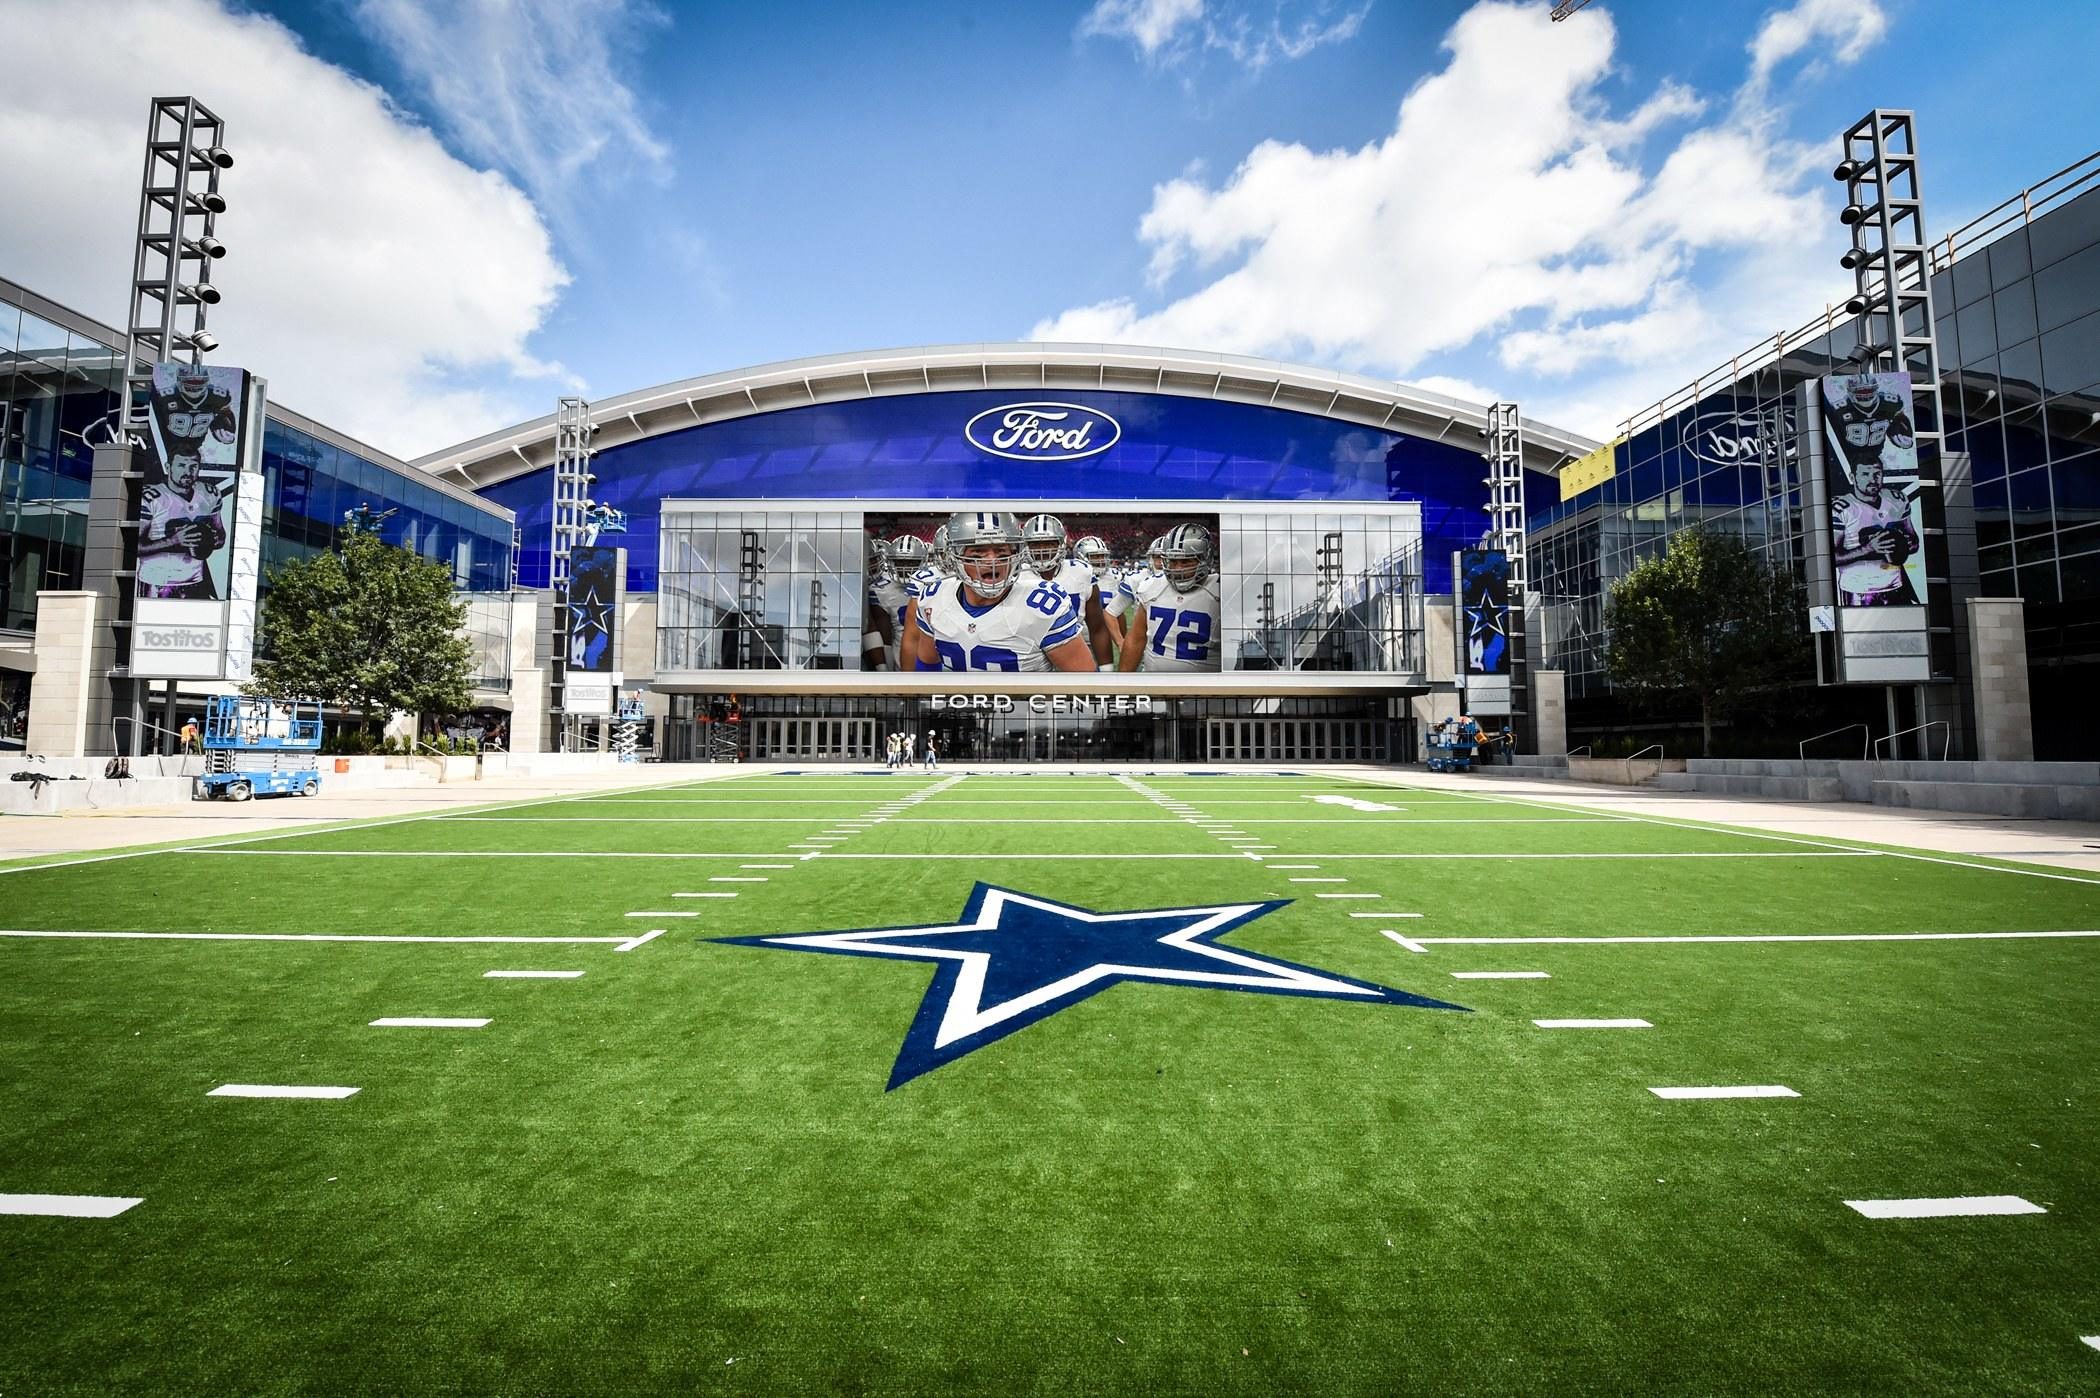 Sean-martin_dallas-cowboys_dallas-cowboys-hoping-to-bring-scouting-combine-to-the-star-2